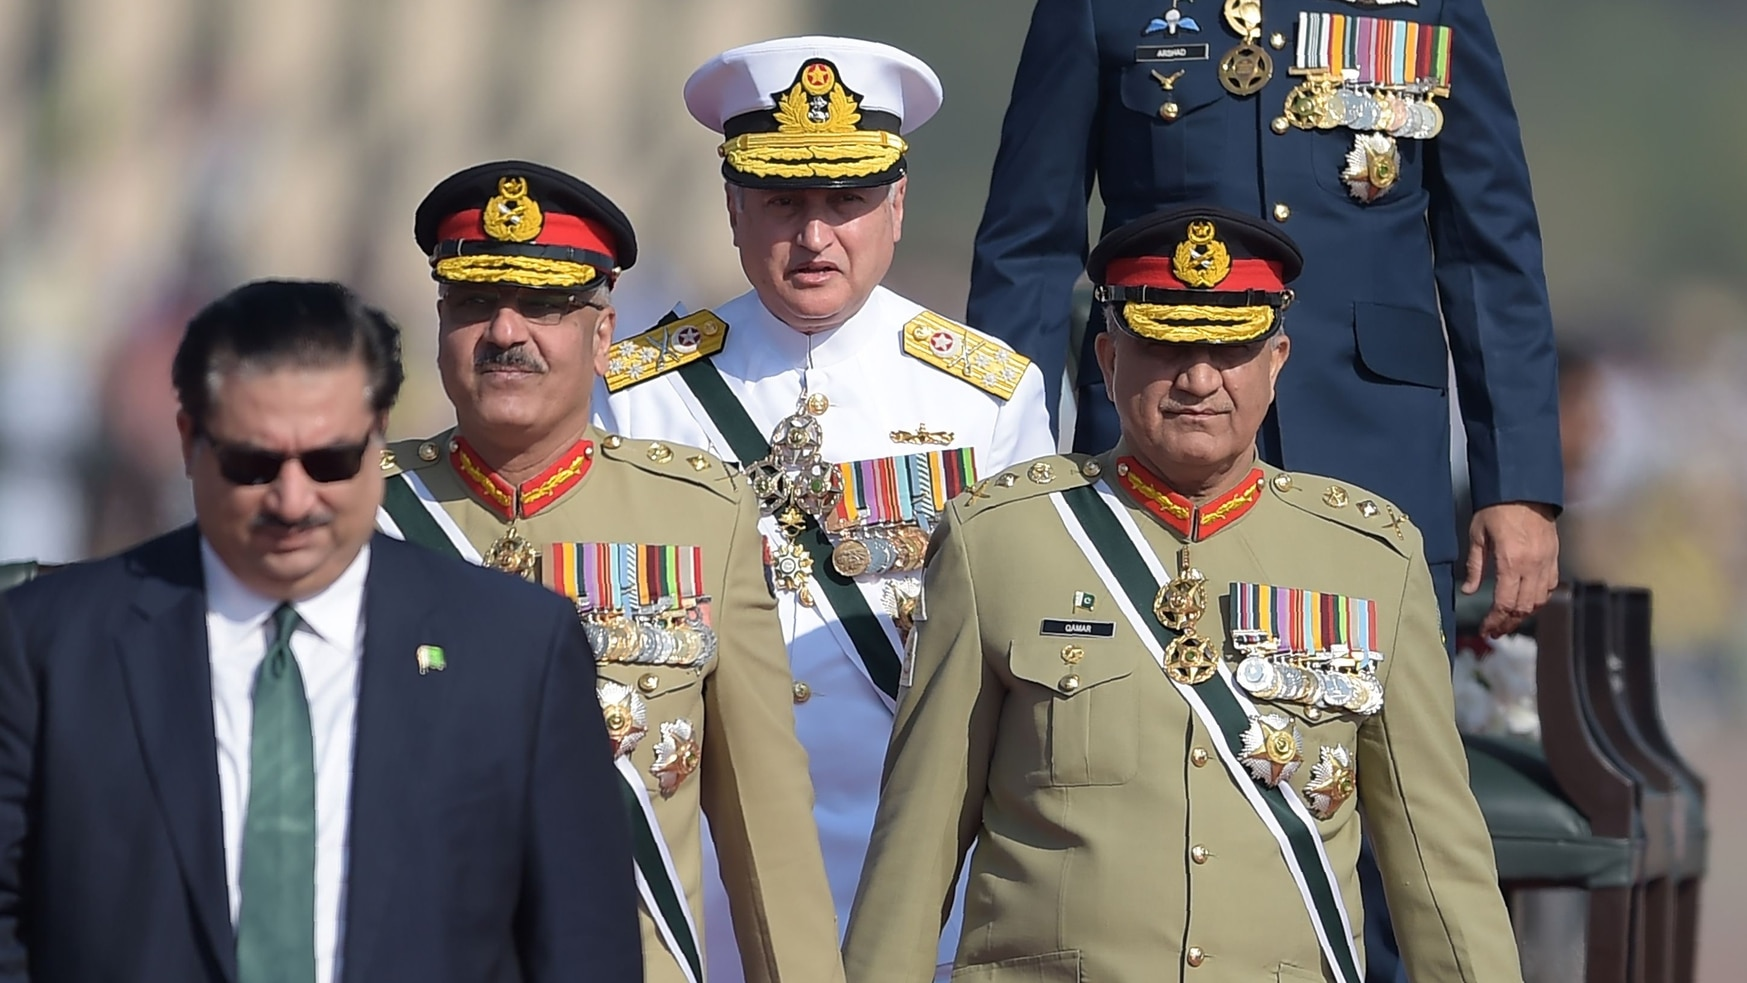 As Pakistan's chief of Naval Staff, Adm. Zafar Mahmood Abbasi, center, revealed plans to equip future warships with directed-energy weapon systems and the P282 hypersonic missile. (Aamir Qureshi/AFP via Getty Images)